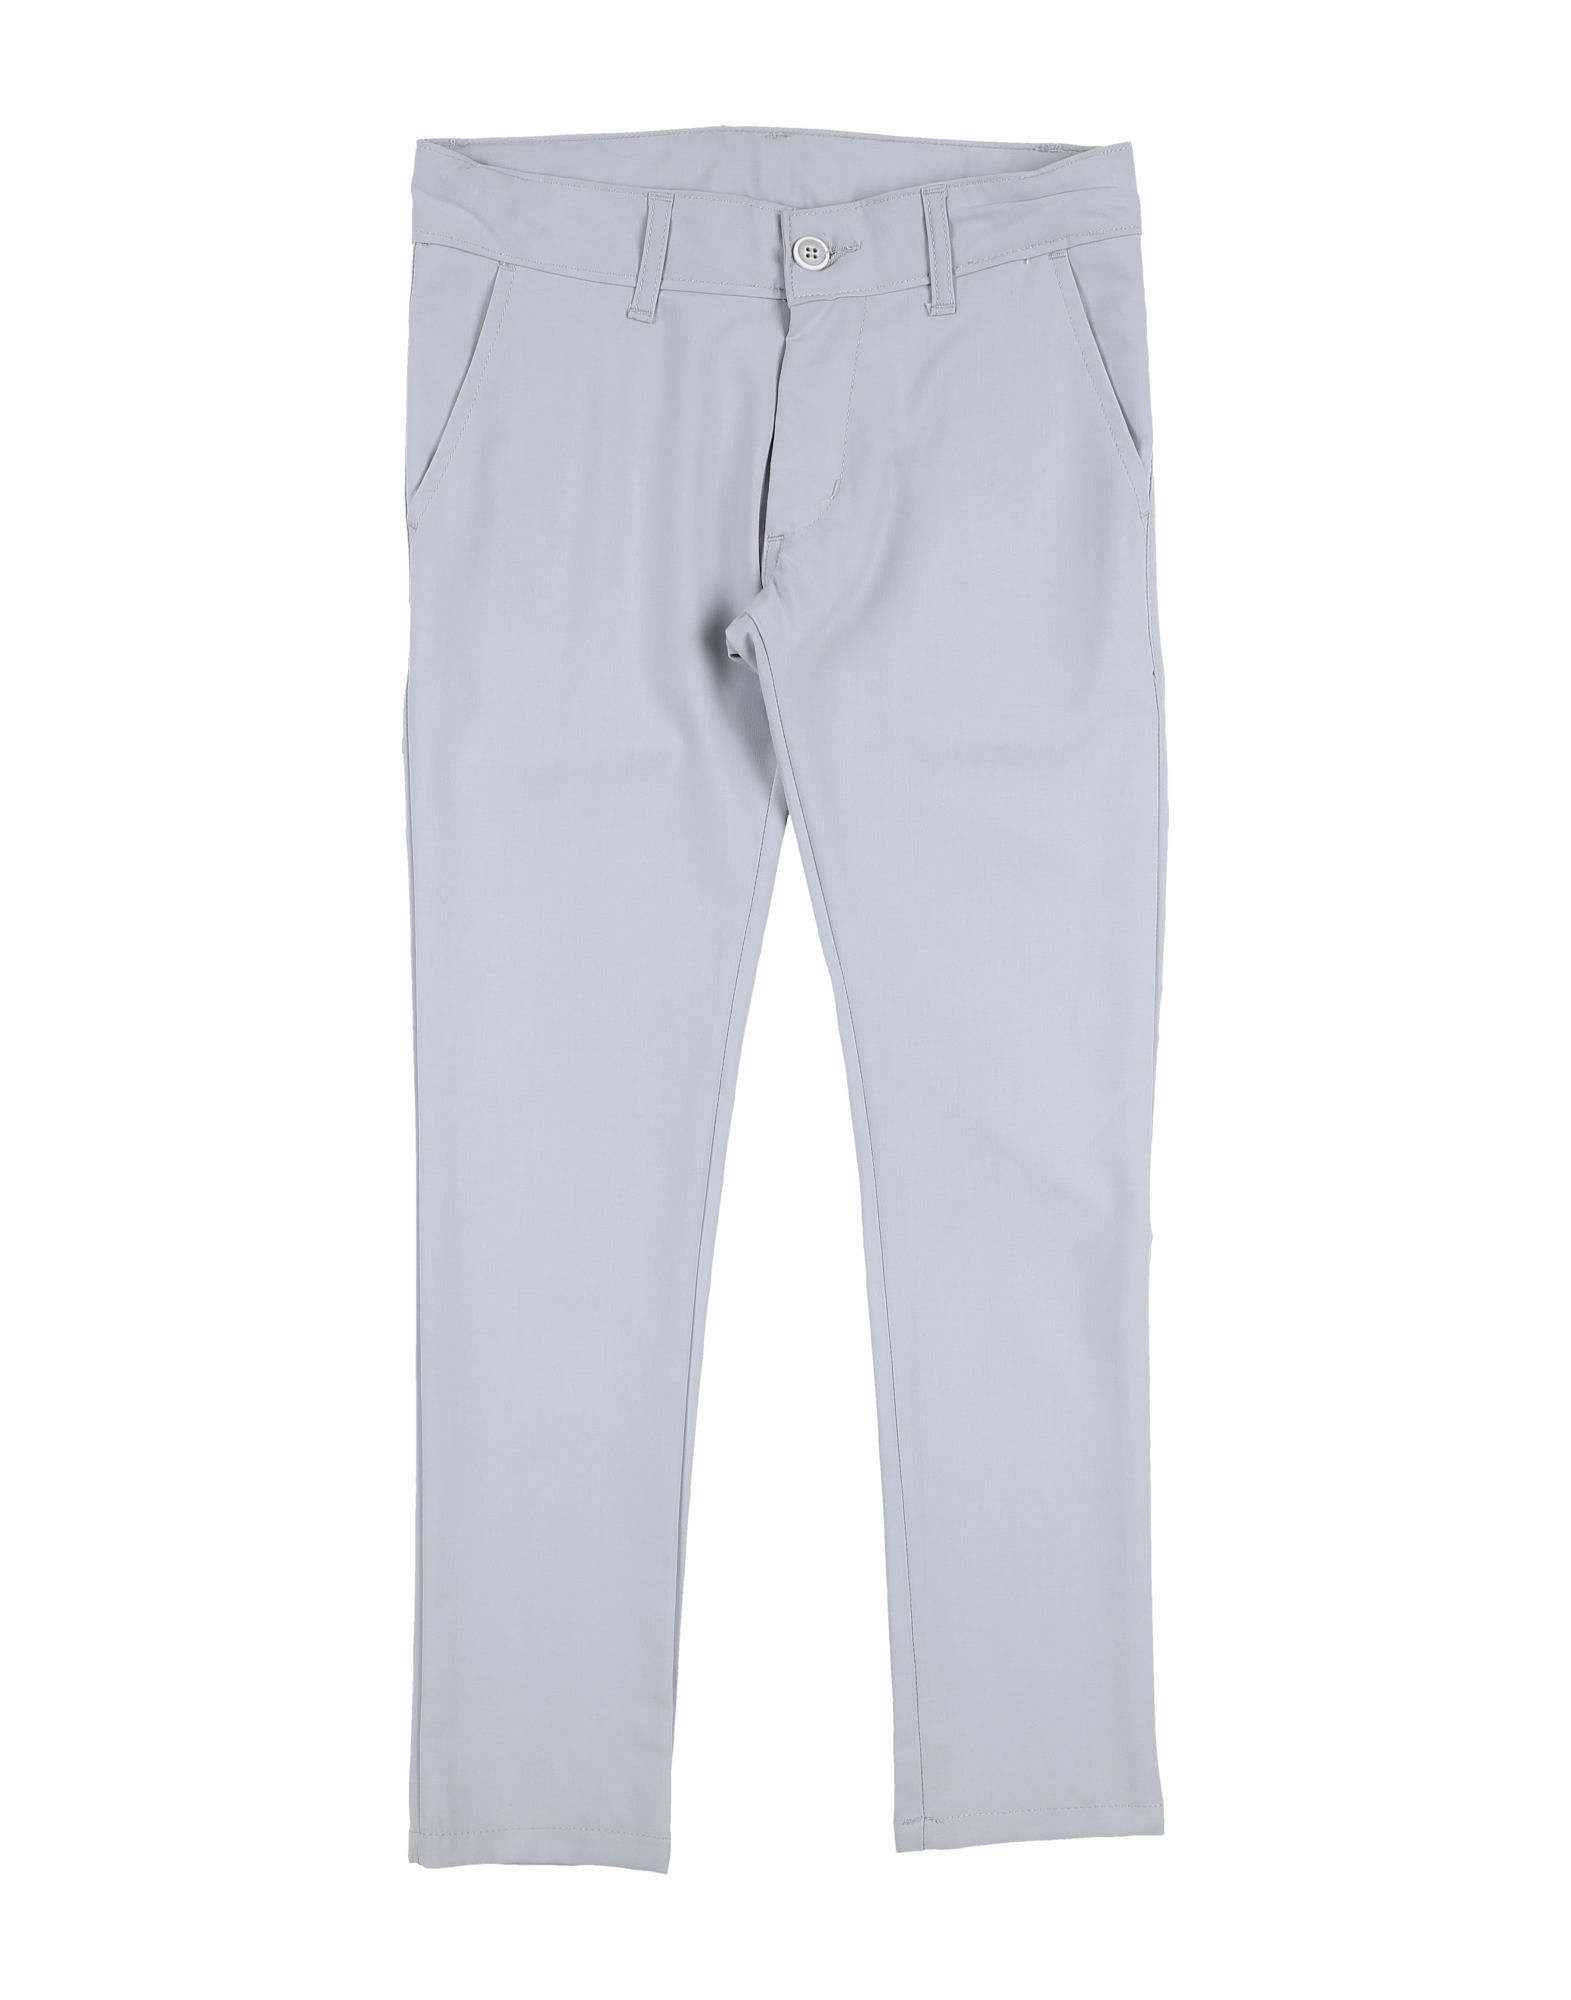 Frank Lin Urban Chic Kids' Casual Pants In Gray